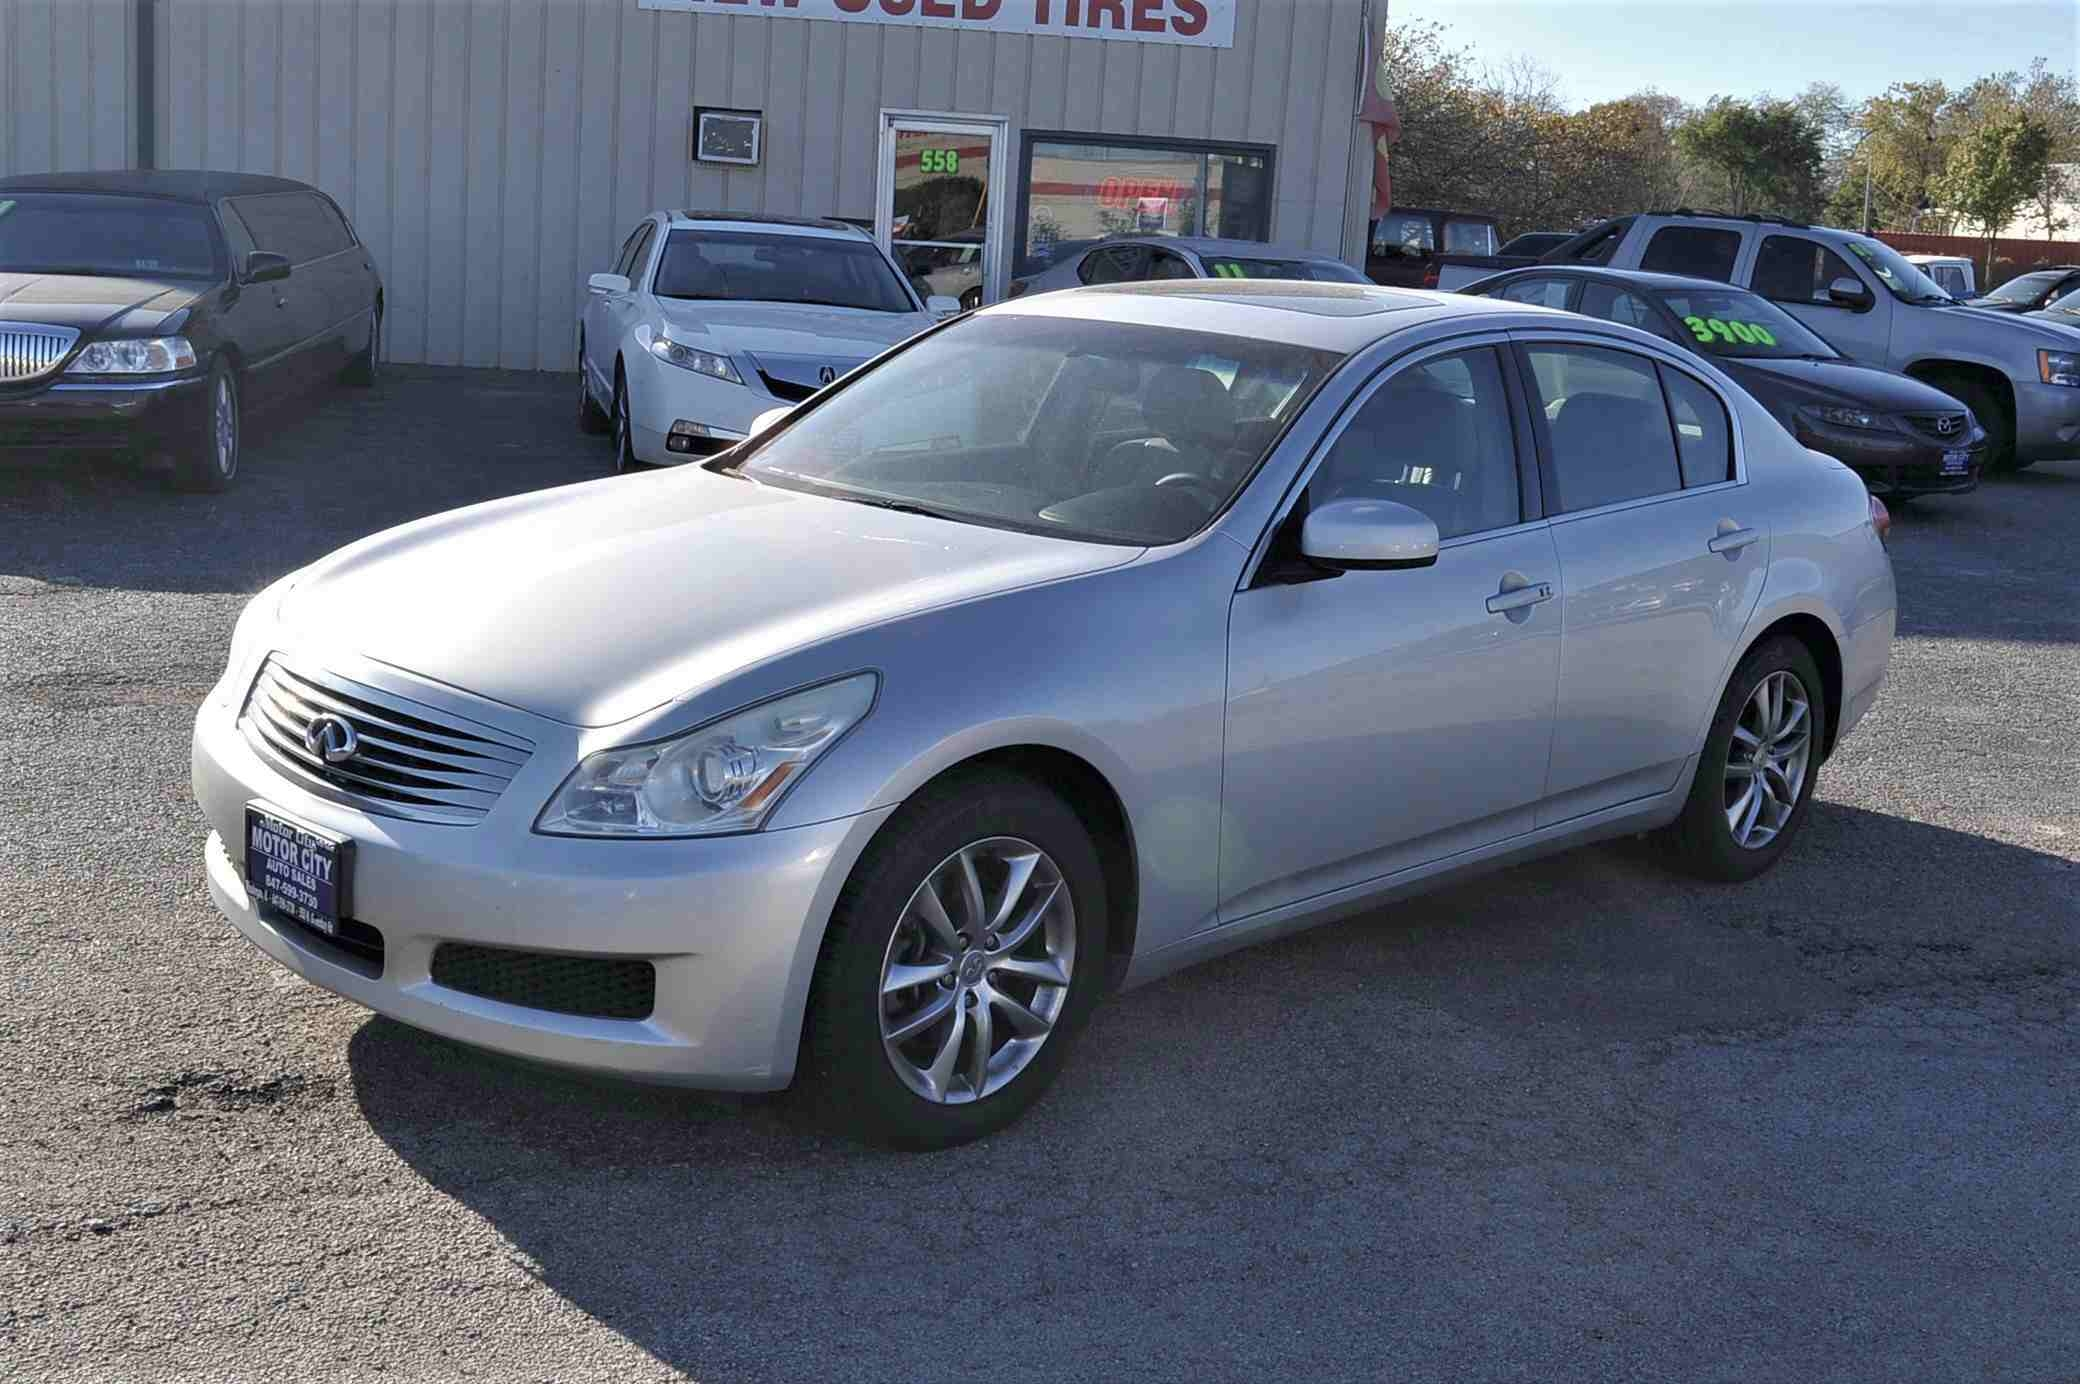 2008 Infiniti G35X Silver Navigation Sedan Used Car Sale